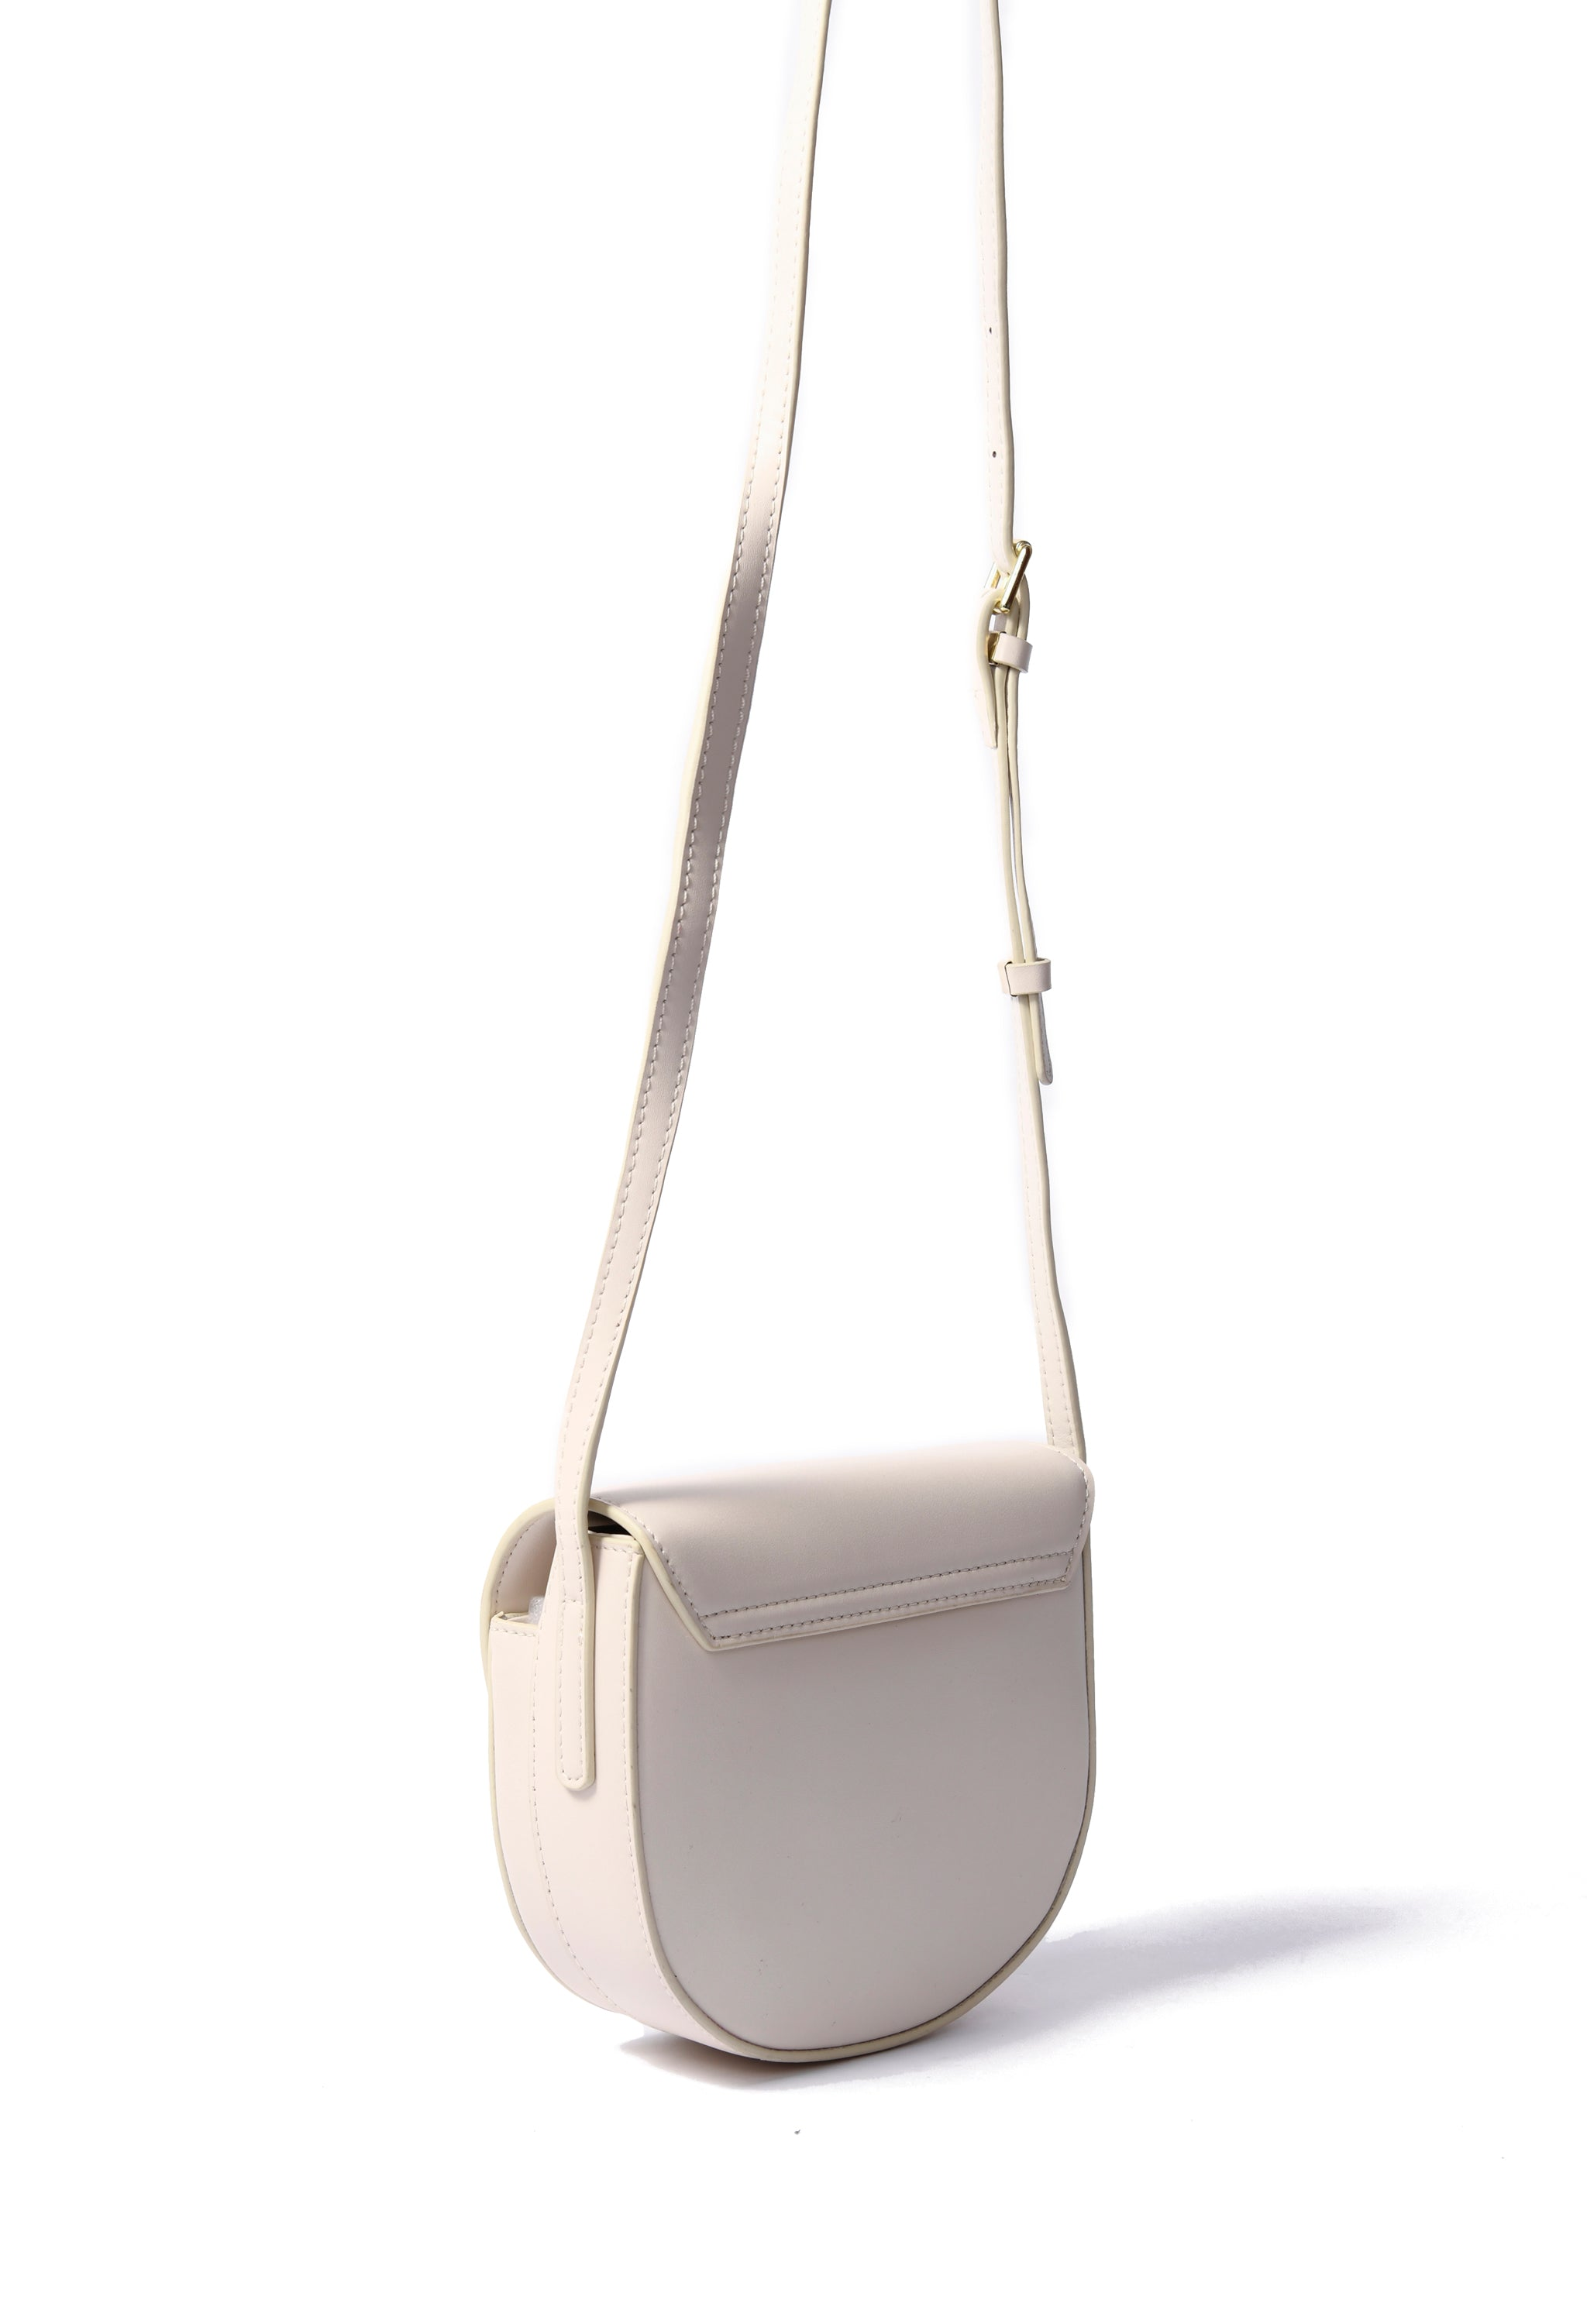 Lea Bag in smooth leather, white